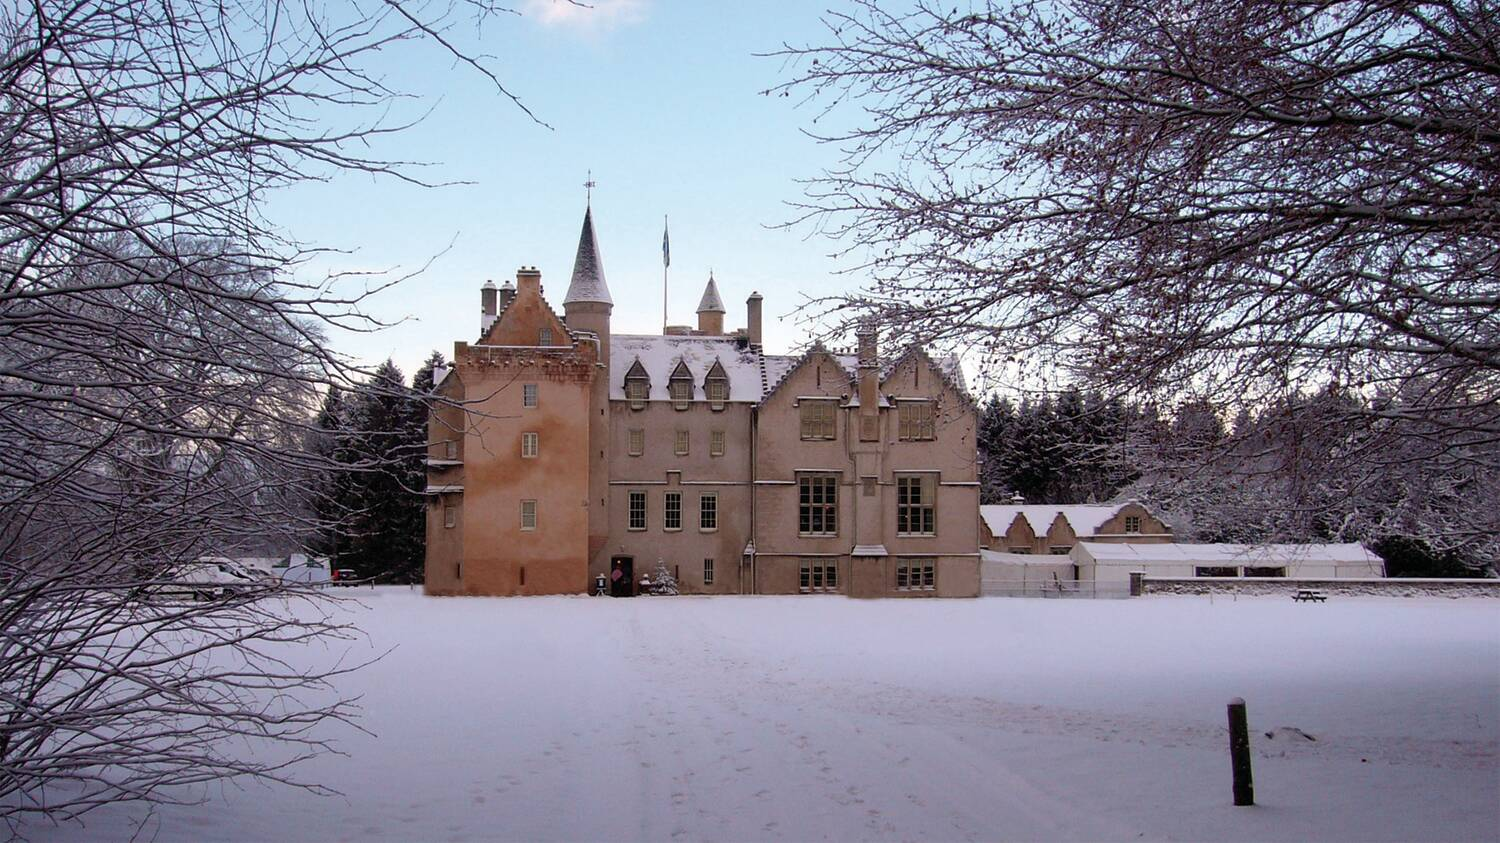 A view of Brodie Castle after heavy snowfall. The lawns and trees are blanketed with snow. The sky is a pale blue. The walls of the castle look even more orange in contrast.